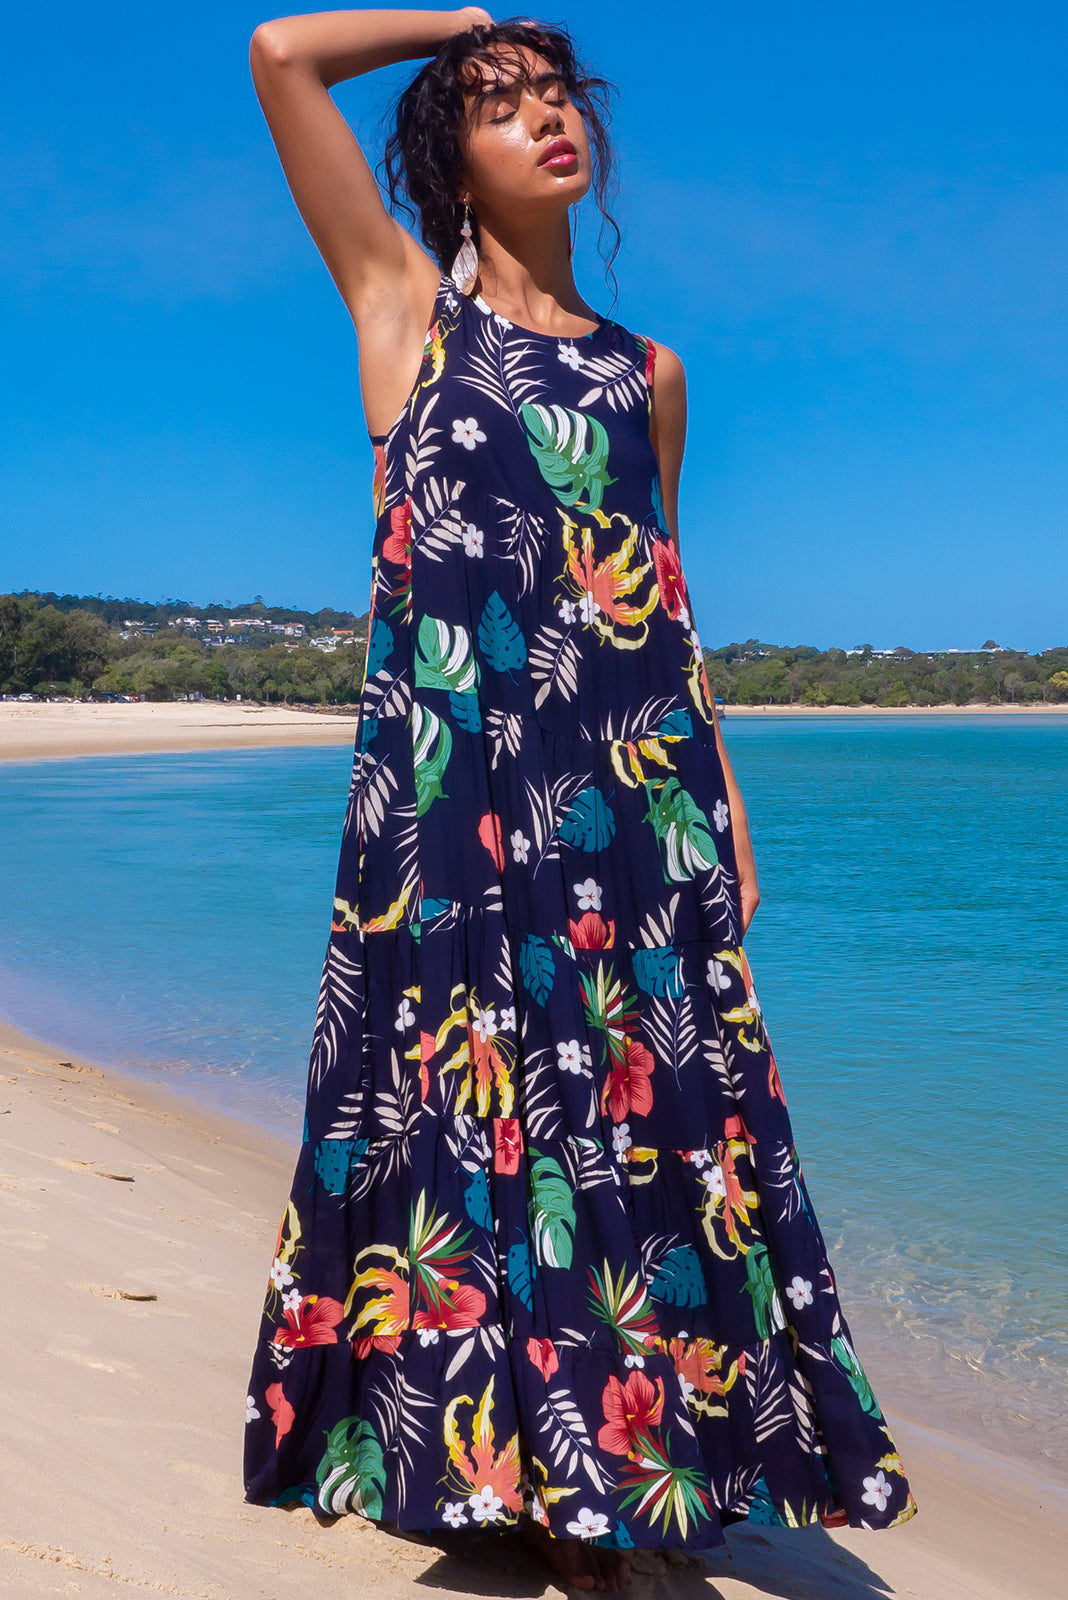 The Cloudland Navy Chic Maxi Dress features back neck tie, sleeveless, breezy, tiered skirt, side pockets and 100% rayon in ink base with tropical print.